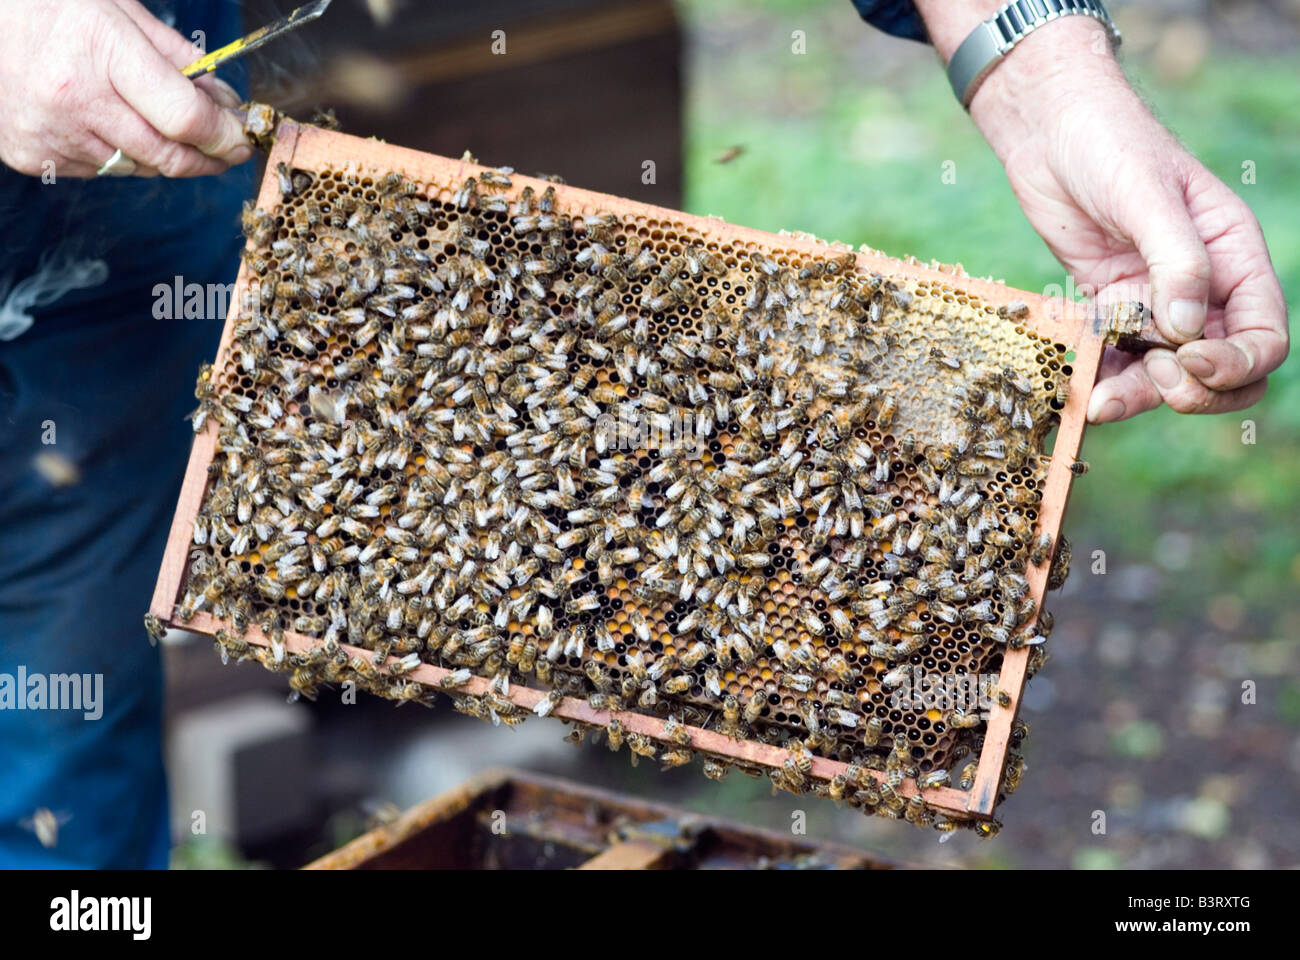 Honey Frame being lifted from the Hive - Stock Image